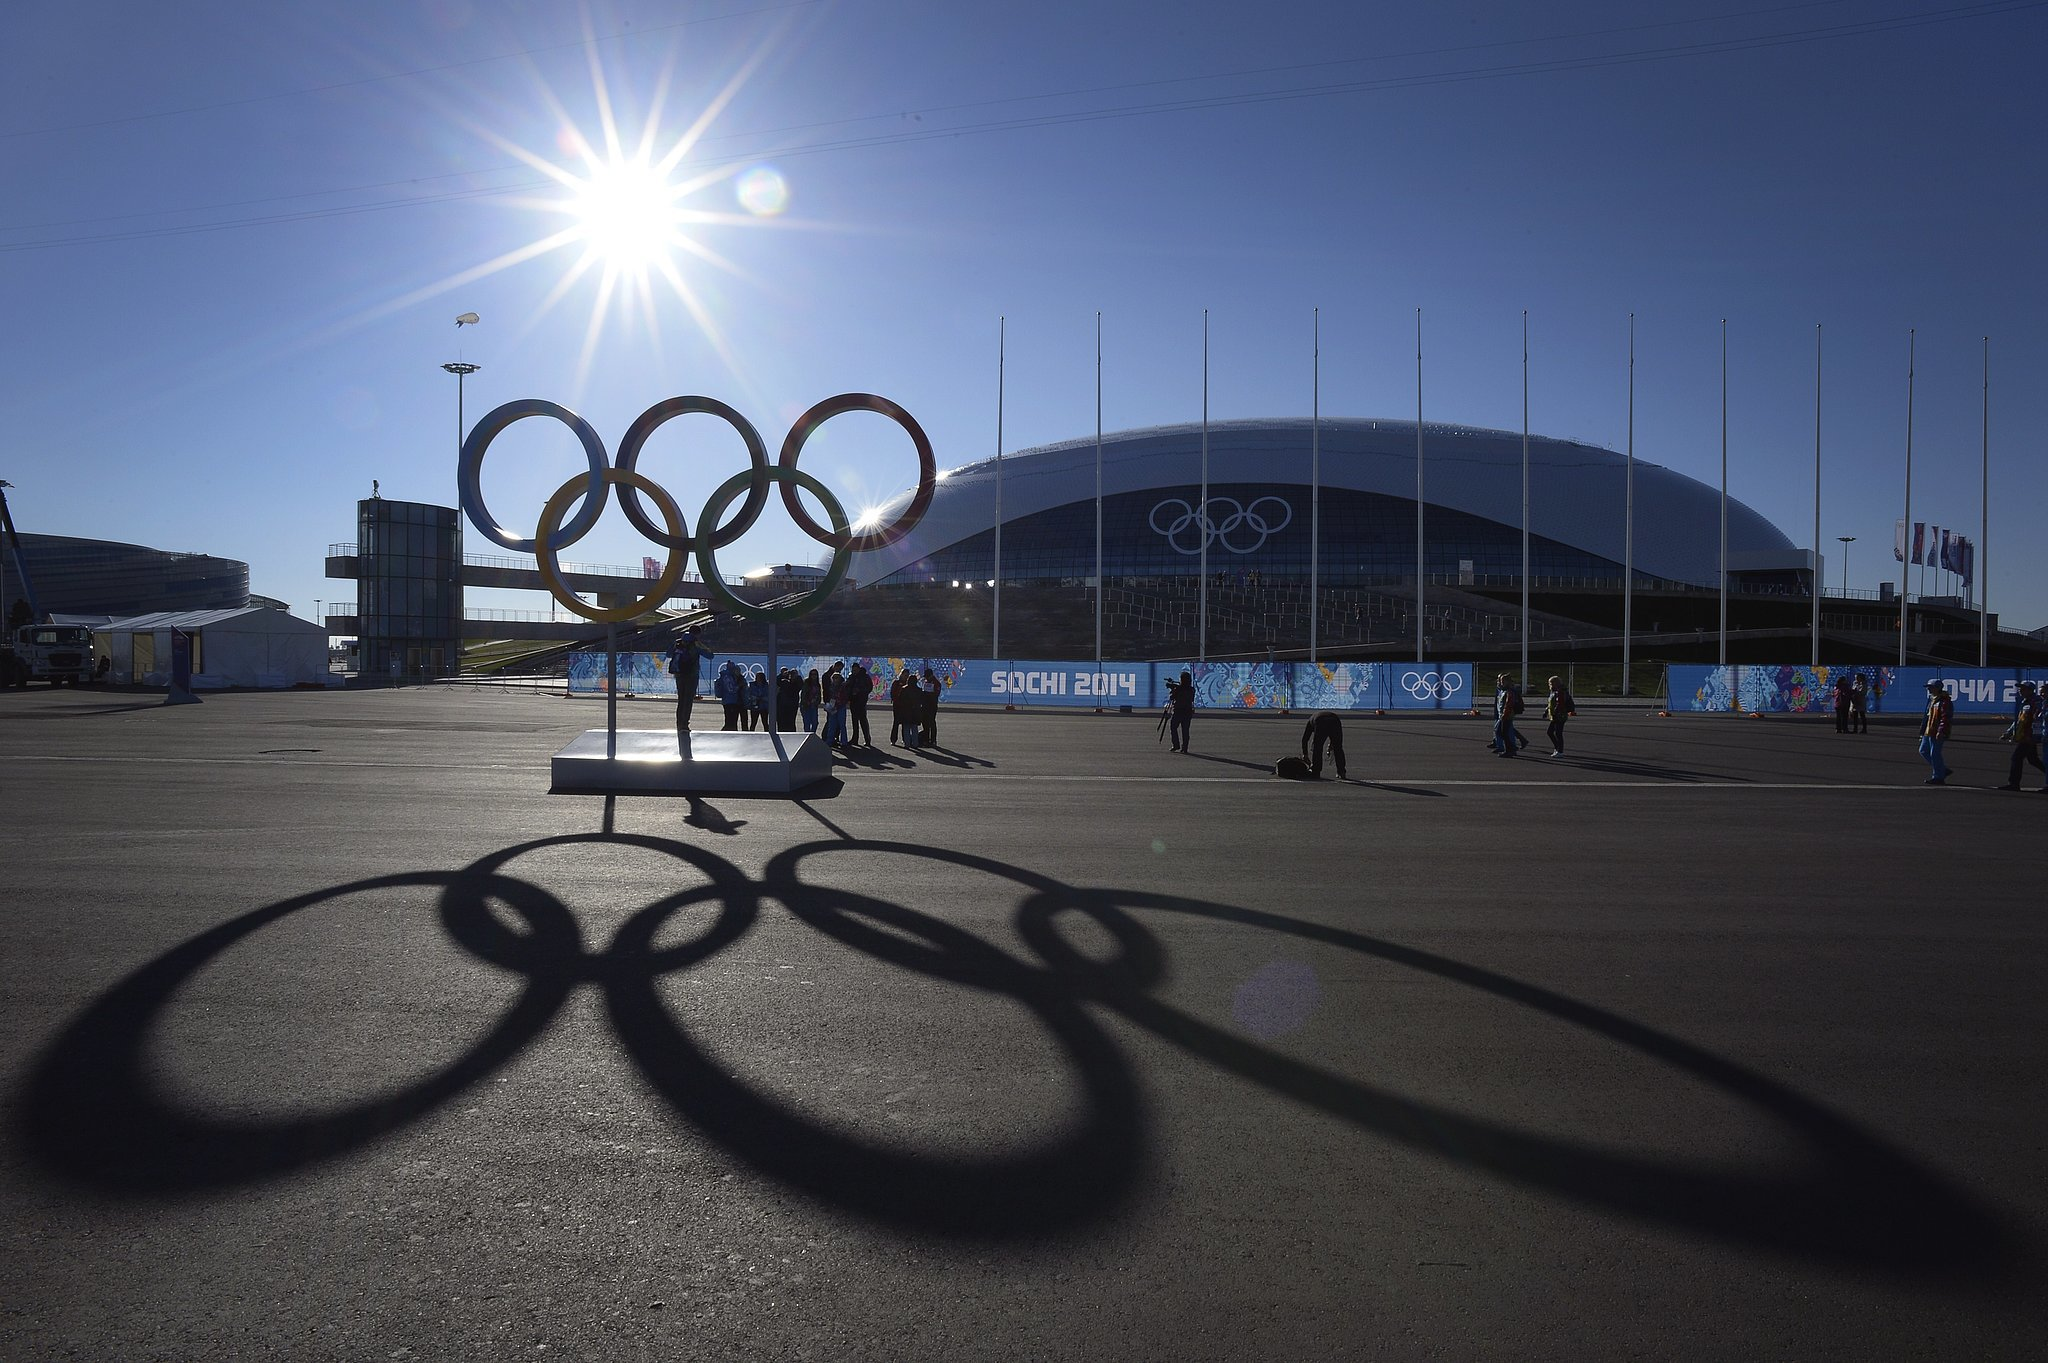 "Source: Getty/Alexander Nemenov   You'll be hearing a lot about the host city. Sochi is a resort city that sits on the Black Sea. Sports venues are set up in two different areas of the city, and in total, it's costing about $50 billion to host the Games there. That's four times the 2007 estimate by Russian President Vladimir Putin. The 2010 Games in Vancouver, British Columbia, Canada, only cost $7 billion. So are the Olympics safe? Russian authorities are combing areas in and around Sochi looking for potential ""black widows,"" suicide bombers named after the deadly spiders. This breed of terrorist is made up of women who are avenging the deaths of their husbands, sons, or brothers who have been killed by Russian security forces. Russia says it has the situation well under control, but some US athletes are asking their families to stay home. If you're all about social media, then go ahead and follow all these Olympians on Instagram. And you'll want to download these essential apps for the Games, too. NBC is airing most high-level events live this year and then repackaging them for primetime. Set your DVRs now for this: ladies' short-program figure skating on Saturday, Feb. 8, at 11:10 a.m. EST and men's USA vs. Russia ice hockey on Saturday, Feb. 15, at 7:30 a.m. EST. If you're planning a viewing party, here are some sporty home goods that capture the Olympic spirit as well as patriotic pieces that are actually pretty cute. Once again, Ralph Lauren designed the Team USA uniforms. They have an awesome, not-so-ugly Christmas-sweater vibe going on."